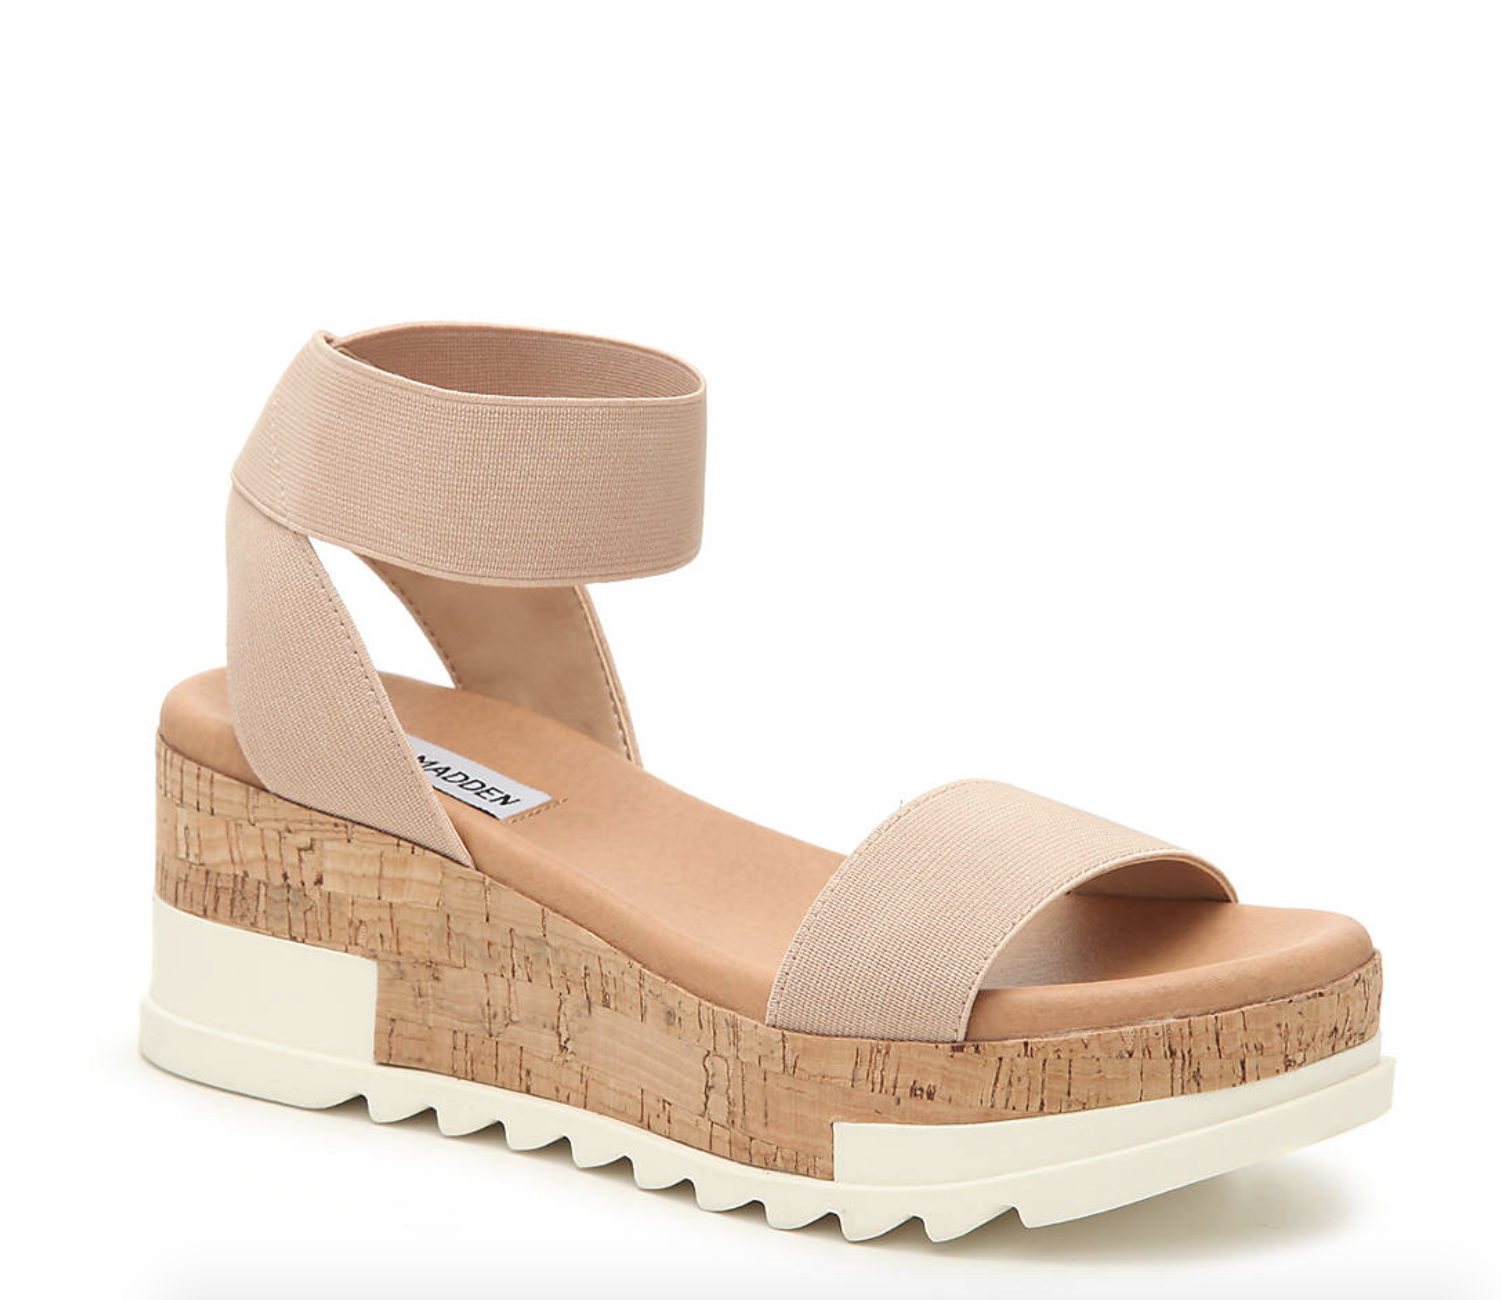 Steve Madden wedge sandals with nude straps